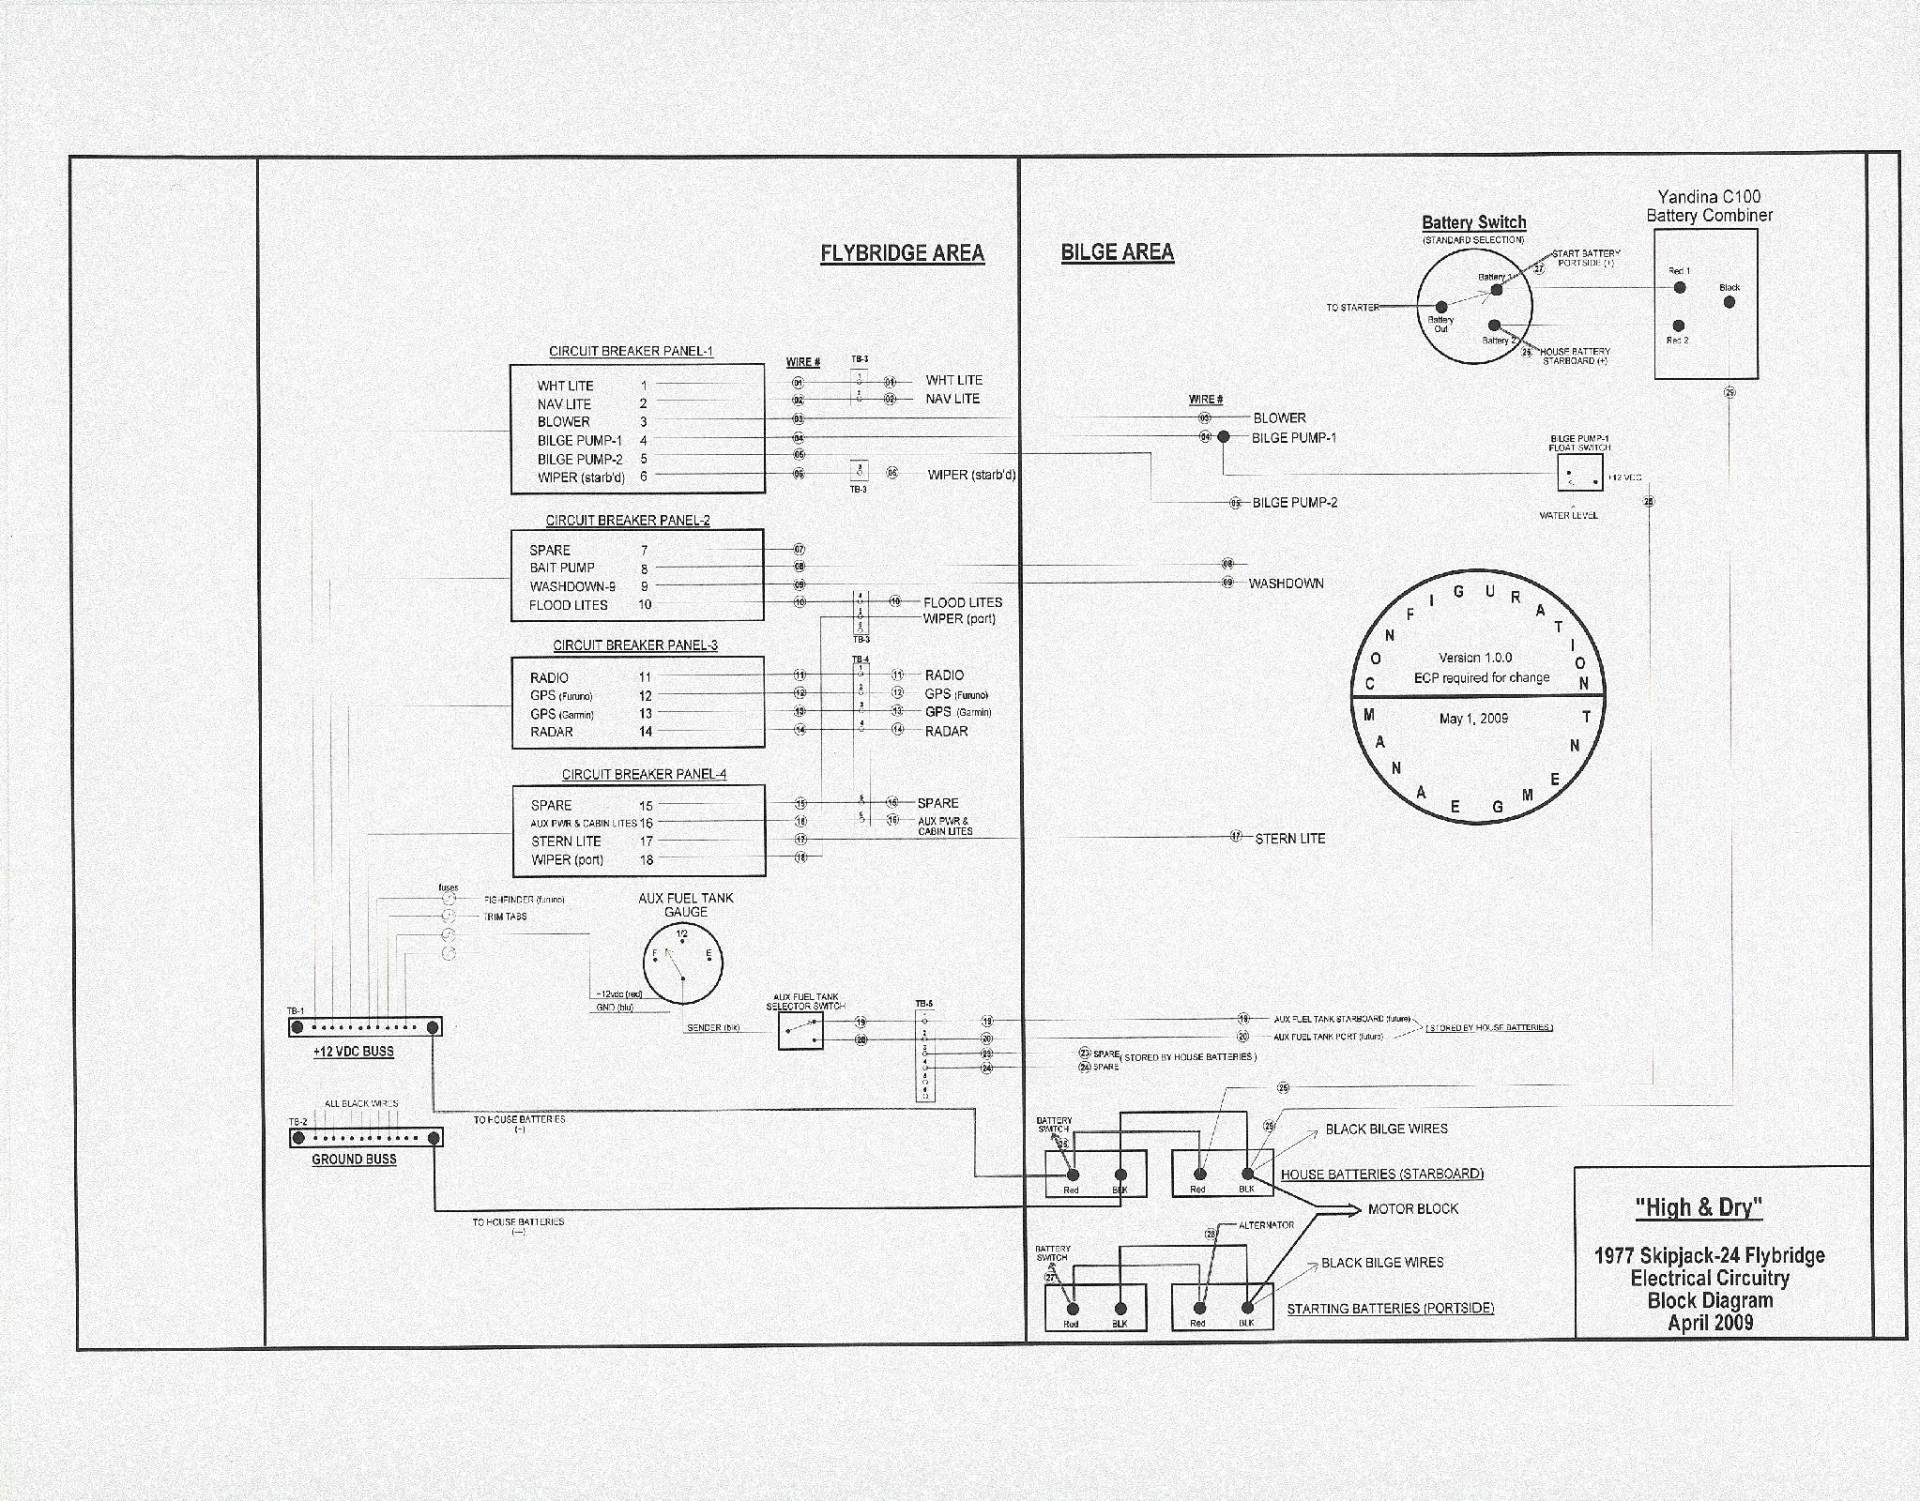 Skipjack Wiring Diagram Switch Power Op Amp With Current Limiting Circuit Tradeoficcom Advice Bloodydecks Rh Bdoutdoors Com House Diagrams Light